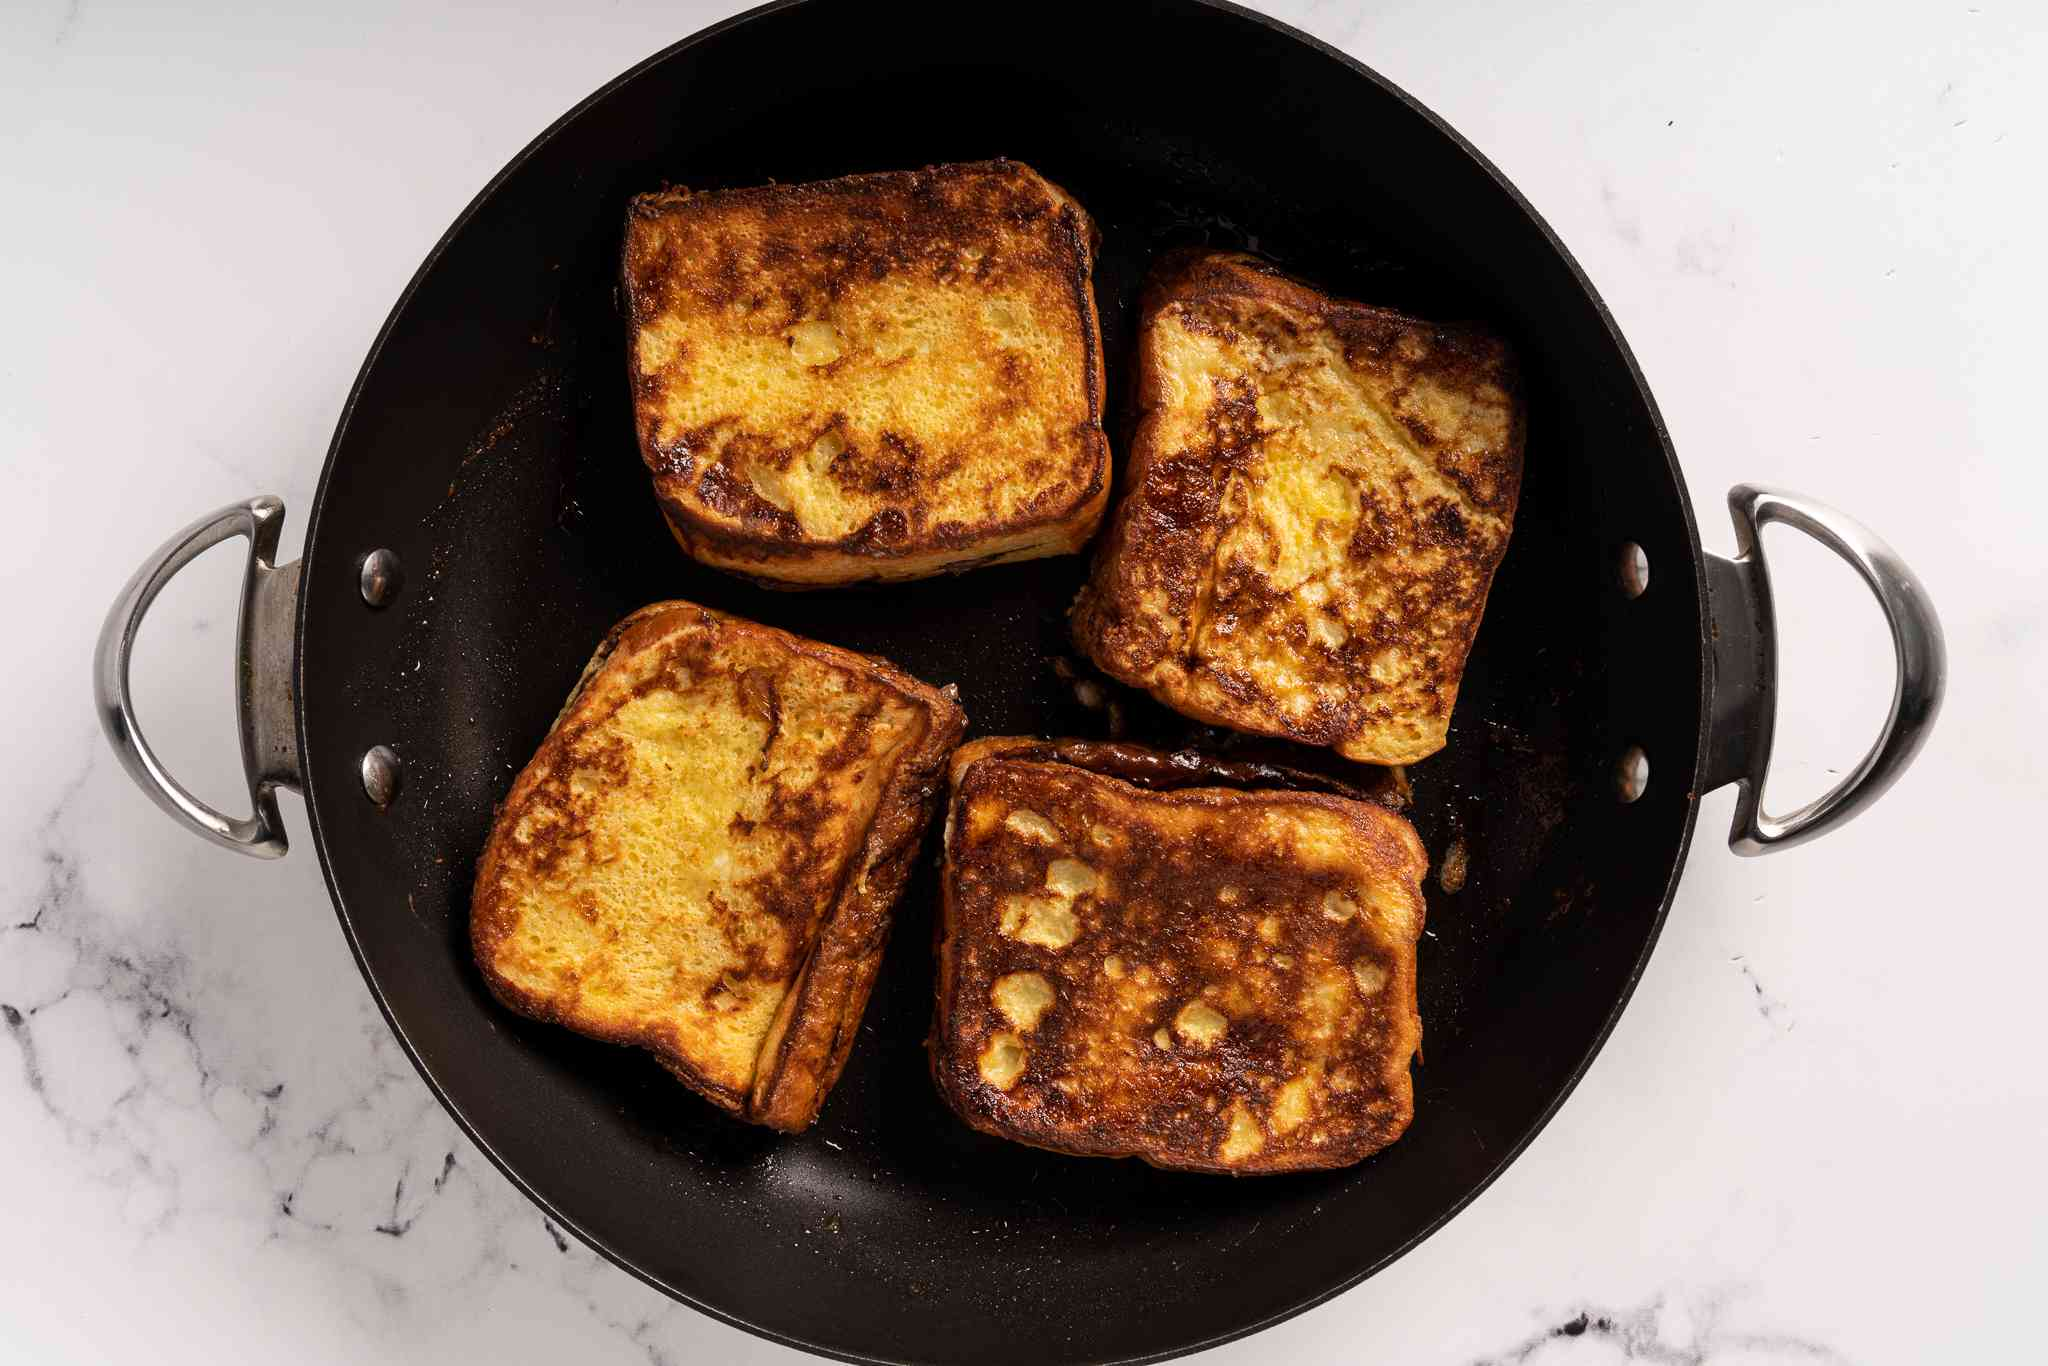 french toast cooking in a pan